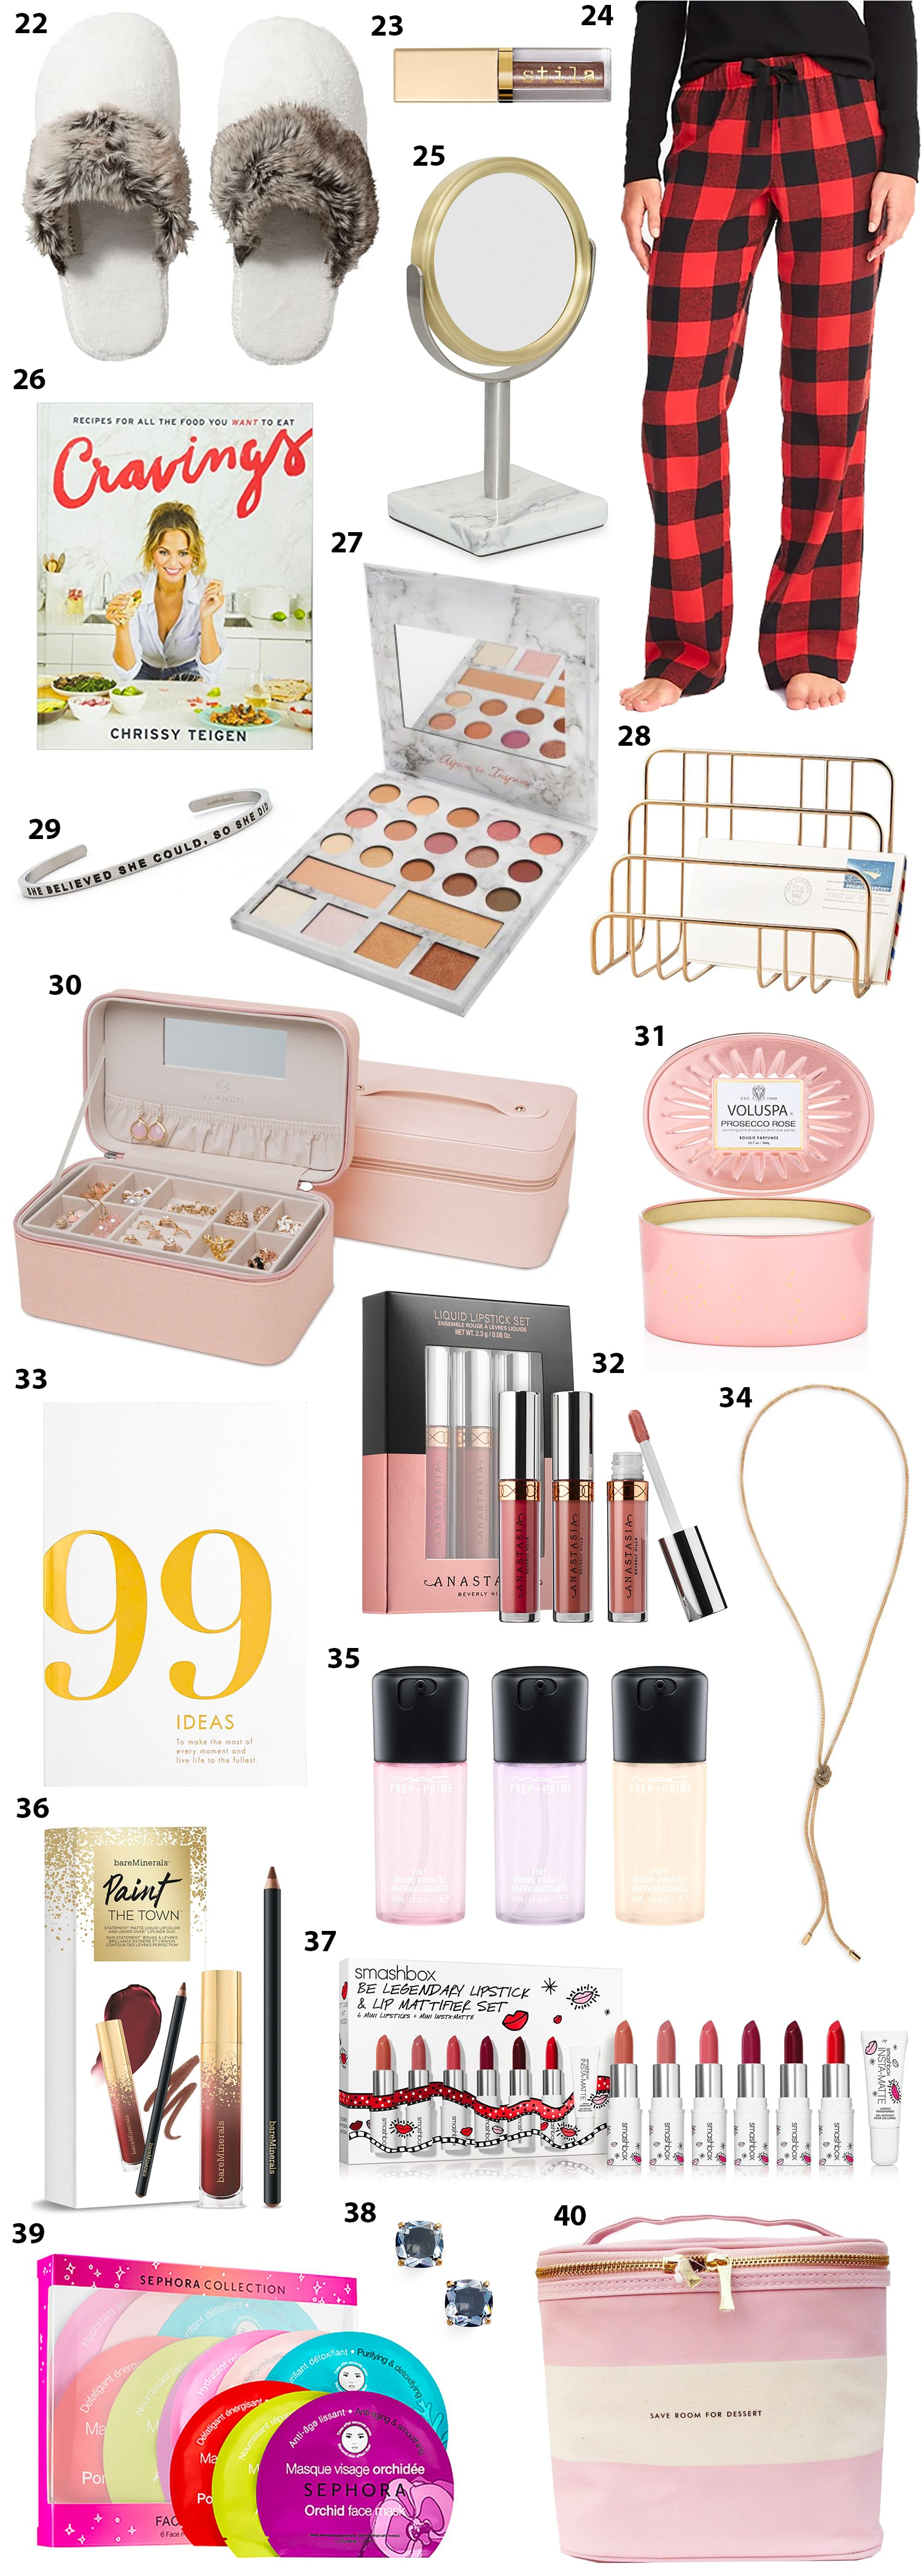 Best christmas gifts under 15 dollars